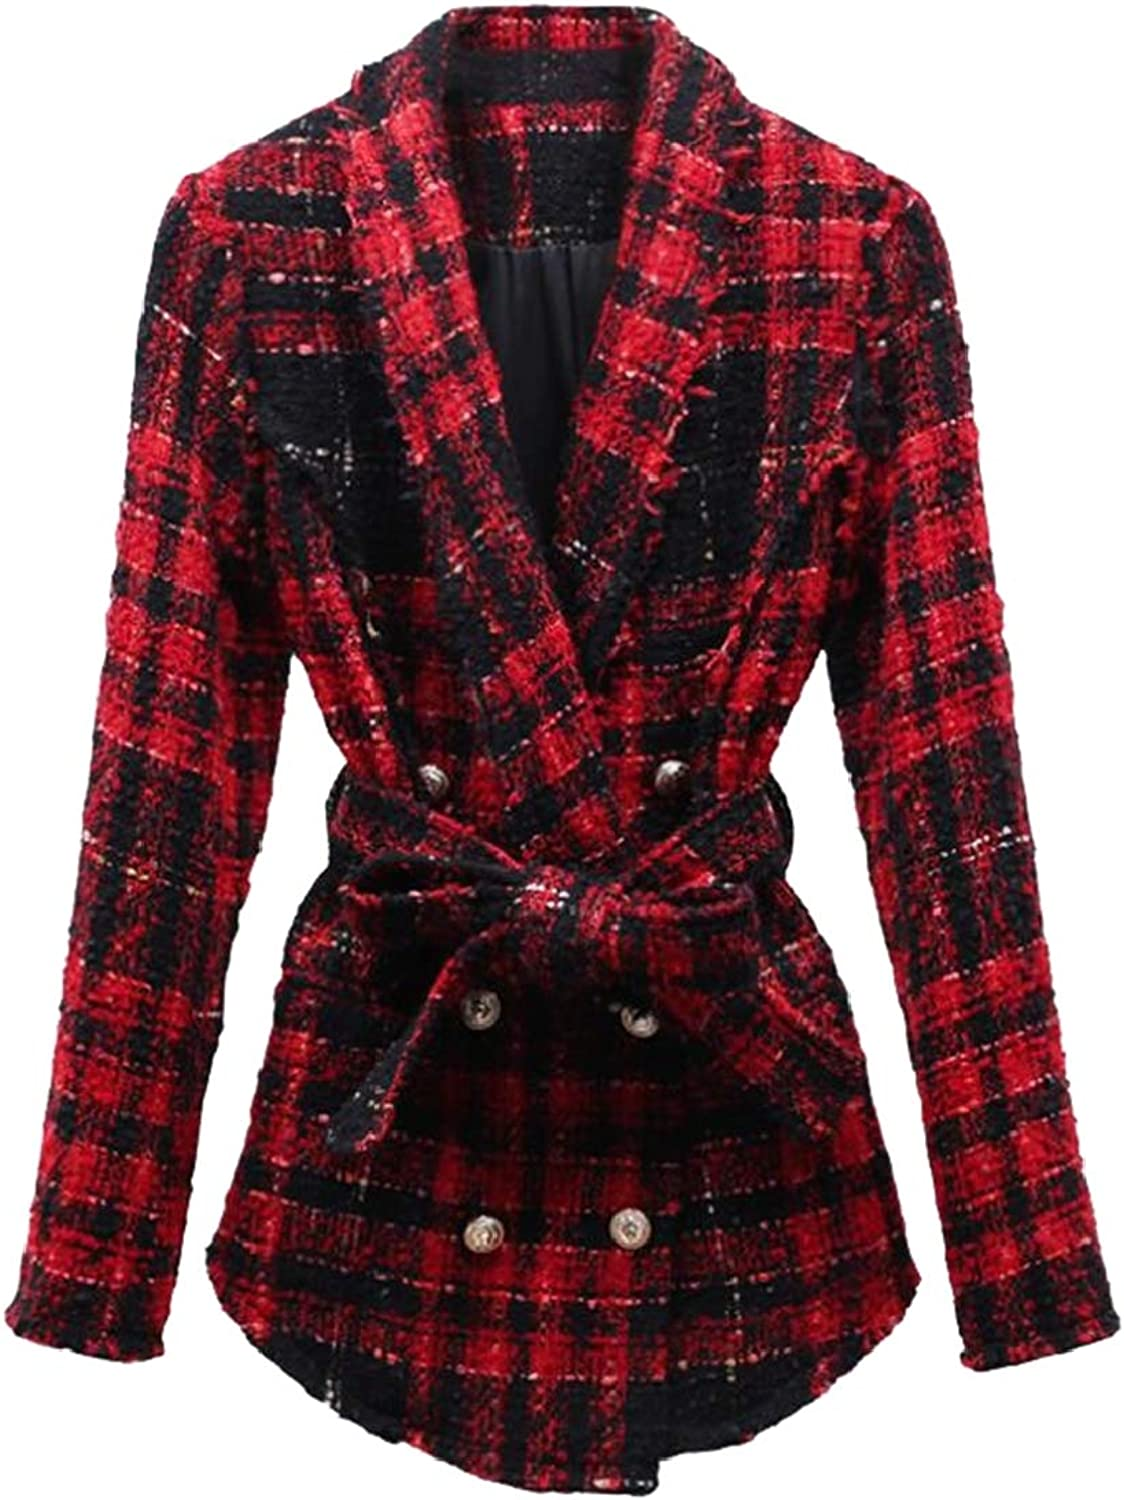 Womens Trade Explosion Models Women's Jacket Plaid Tweed with Pockets